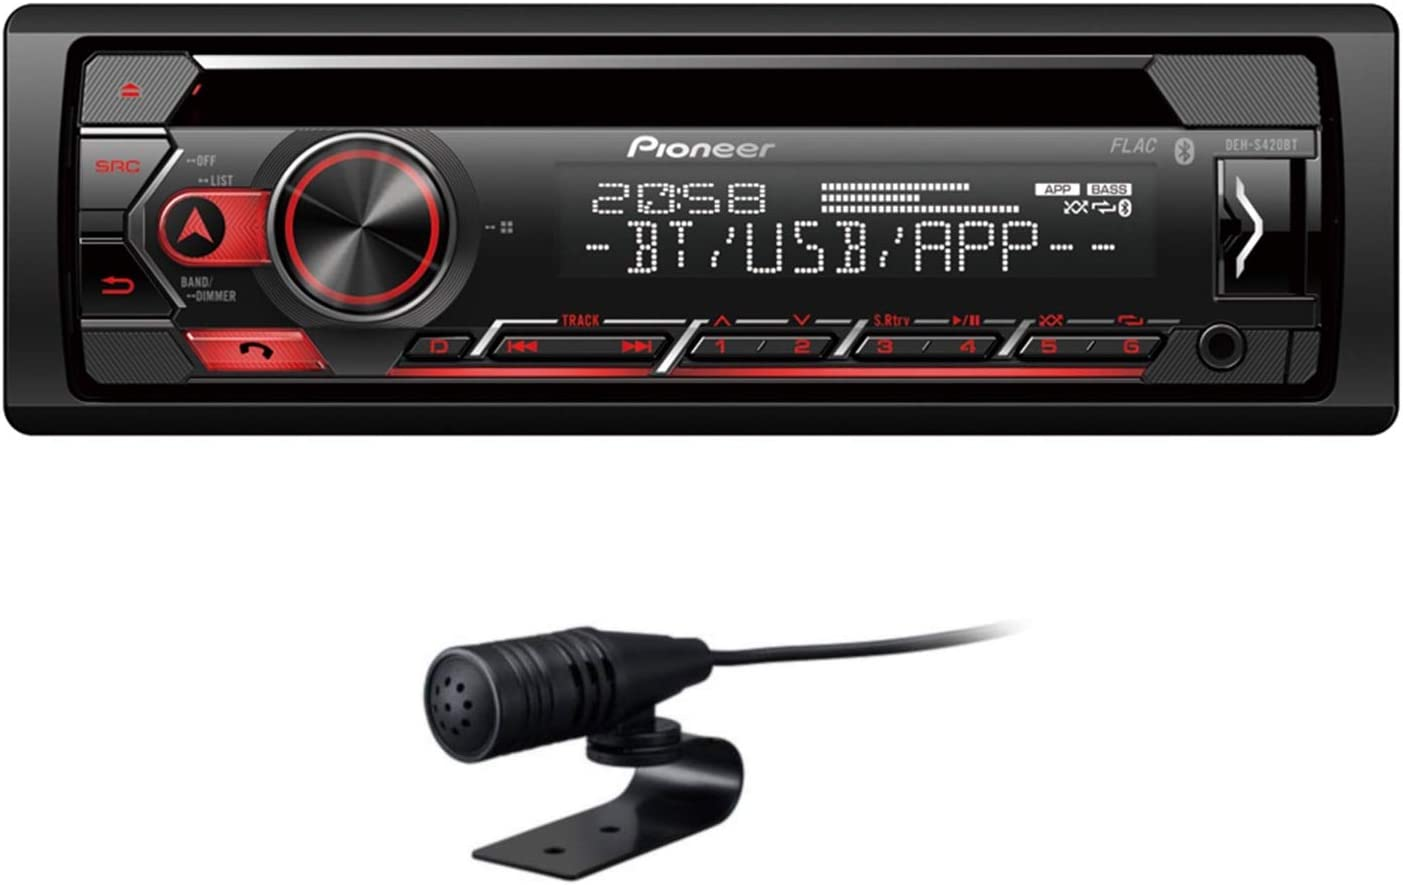 Pioneer Deh S420bt 1din Car Radio Cd Tuner With Rds Bluetooth Mp3 Usb And Aux Input Handsfree Smart Sync App 13 Band Equaliser Ipod Control Auto